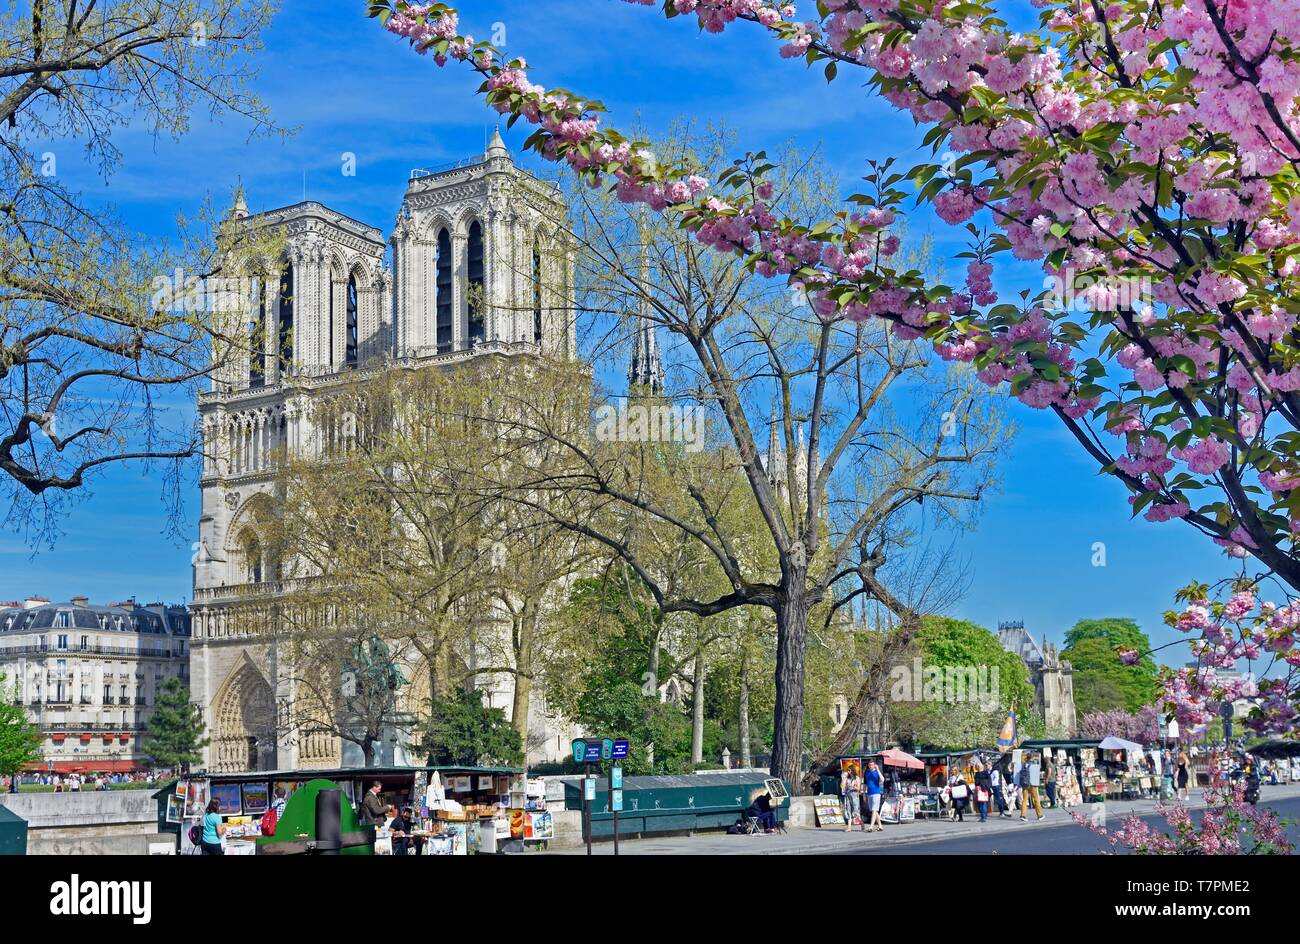 France, Paris, area listed as World Heritage by UNESCO, île de la Cité (City Island), Notre Dame cathedral with a japenese cherry tree (Prunus serrulata) in blossom - Stock Image